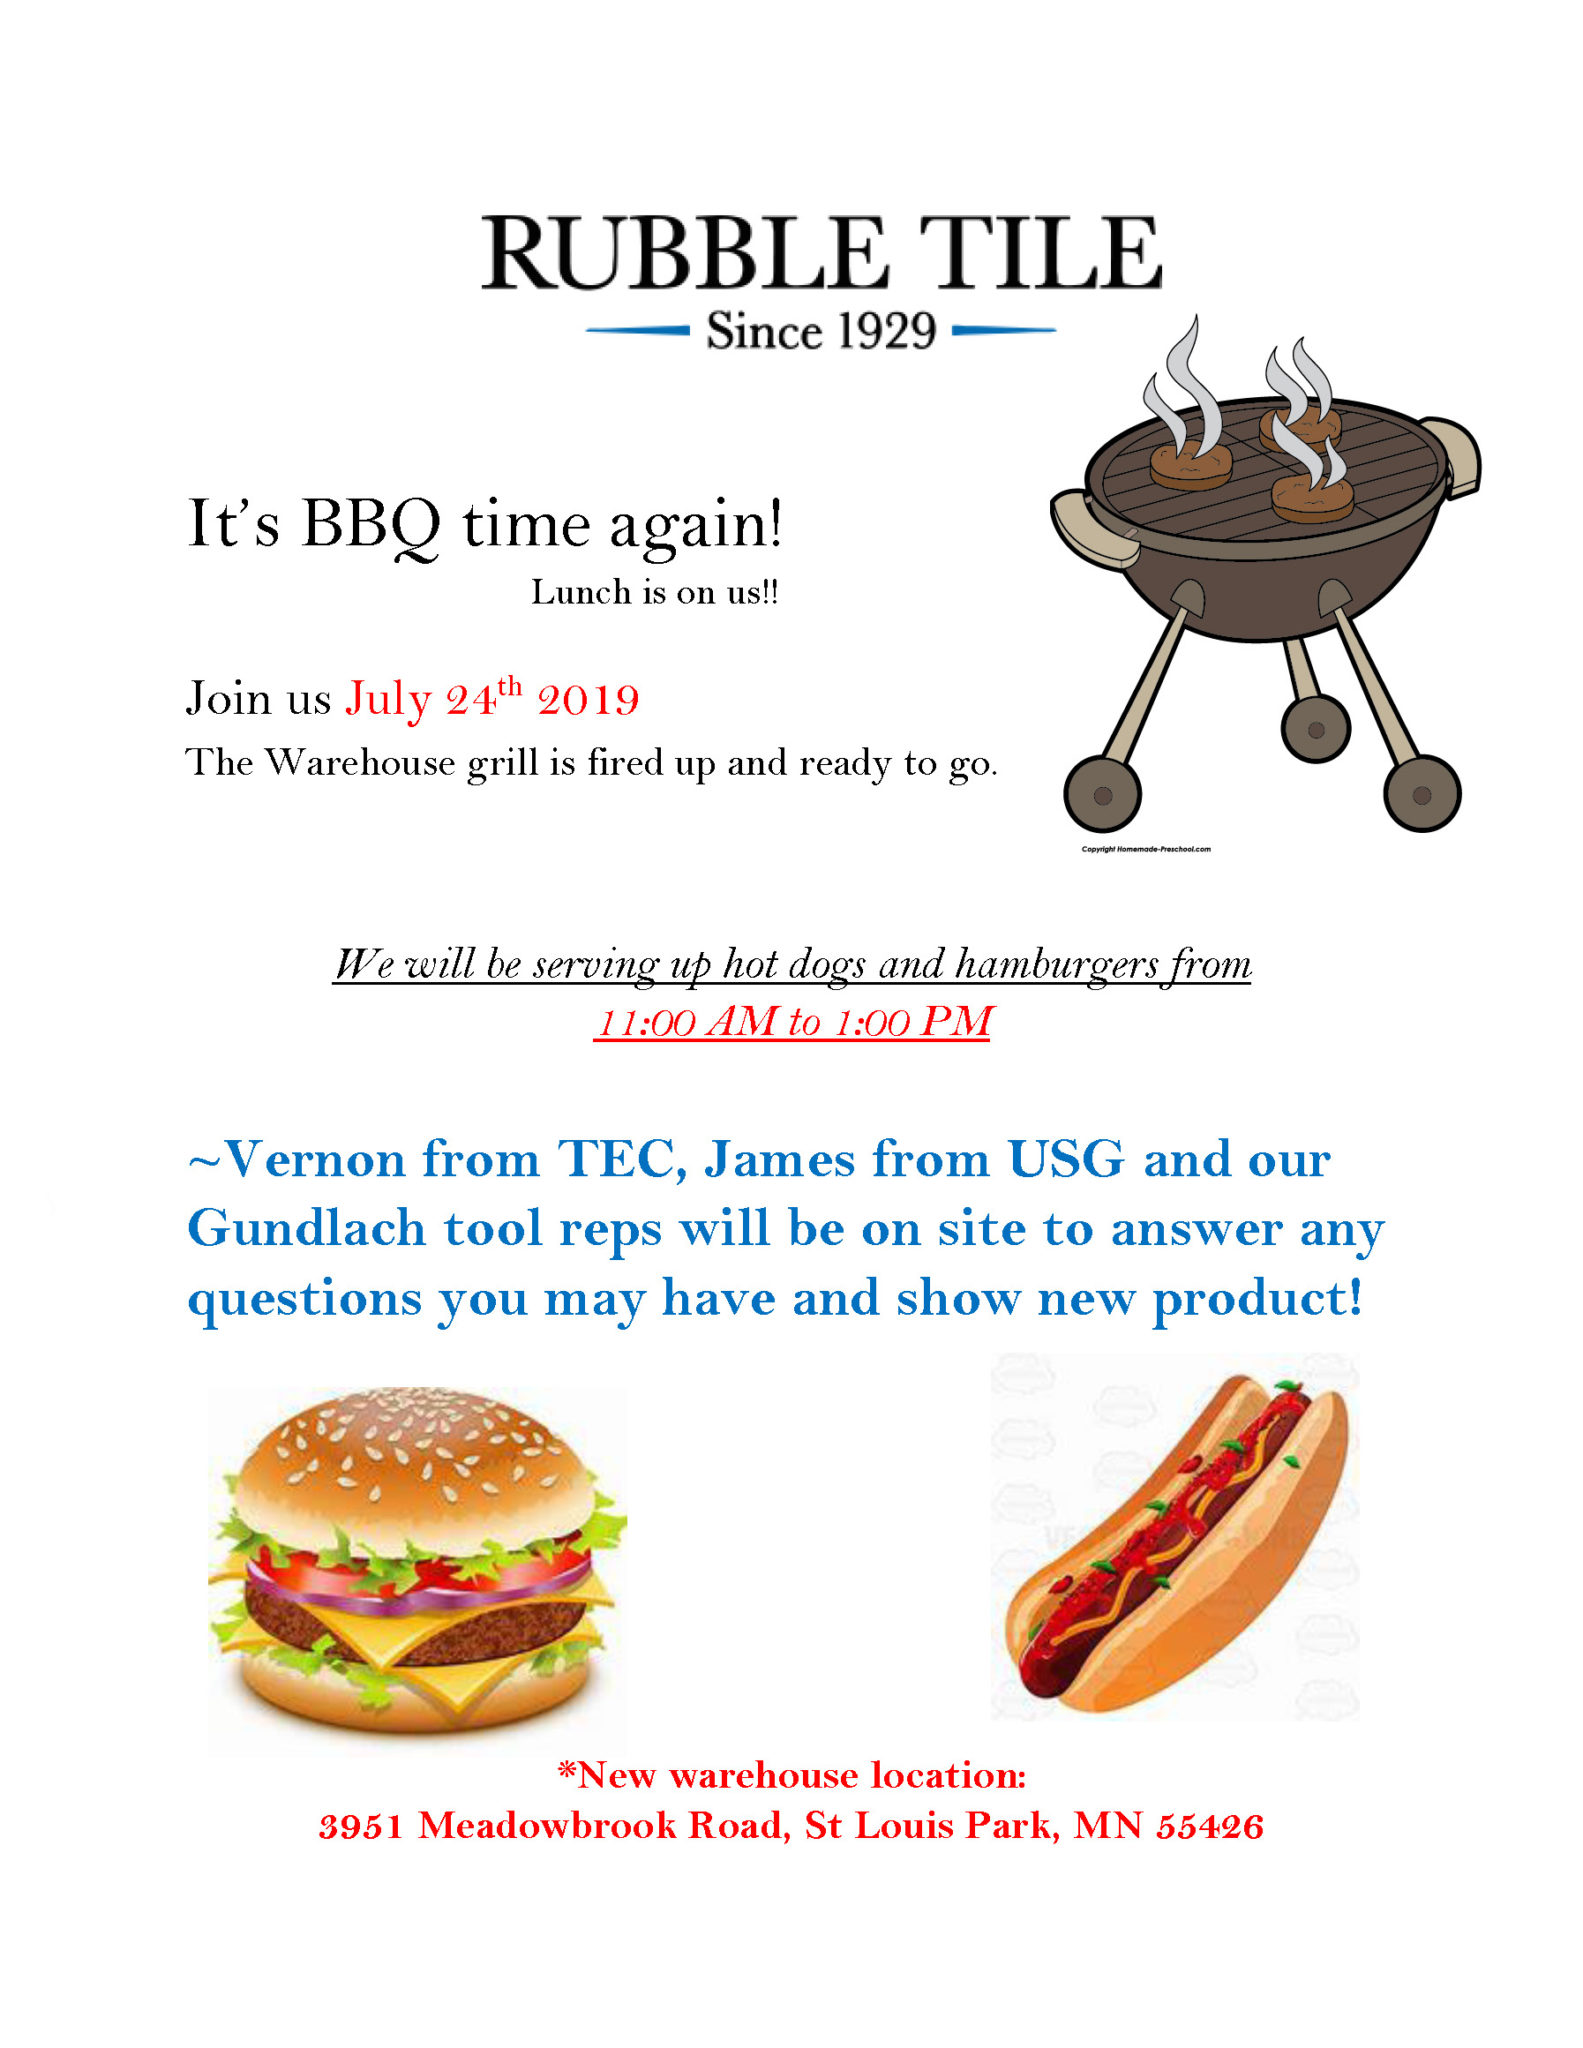 Rubble Tile BBQ 2019